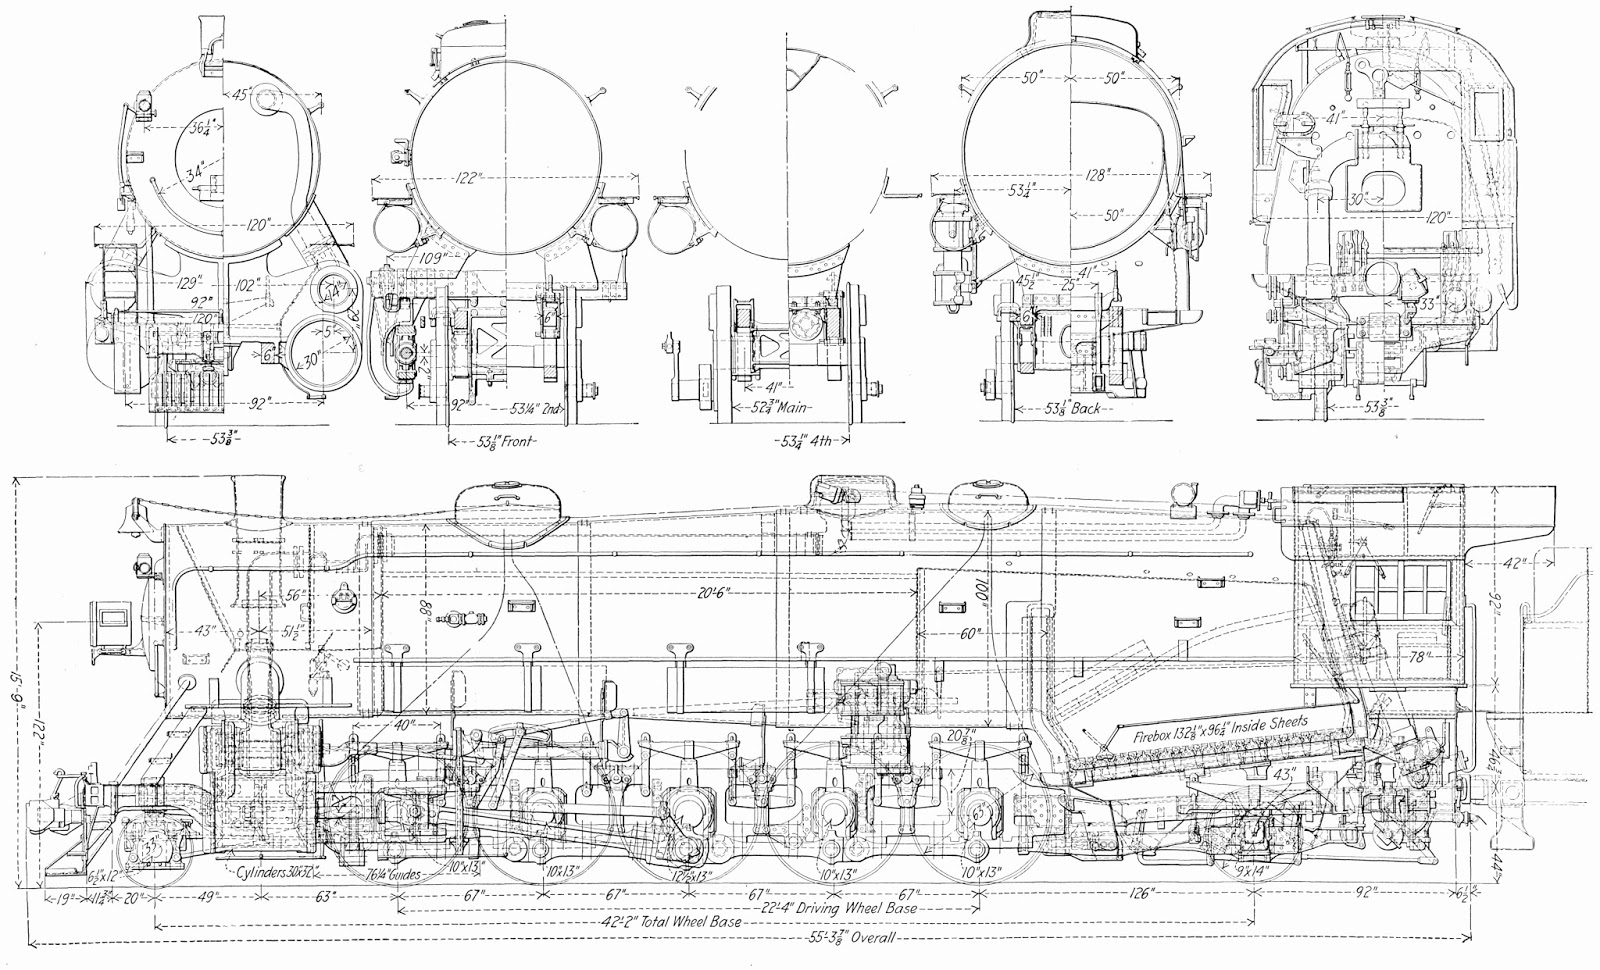 Sarkology March 2017 Simple Steam Engine Besides Diagram On The Main Problem With Trains And Reason Why Volunteers Than Run Preservation Society Are So Dedicated Is That It Takes An Awful Lot Of